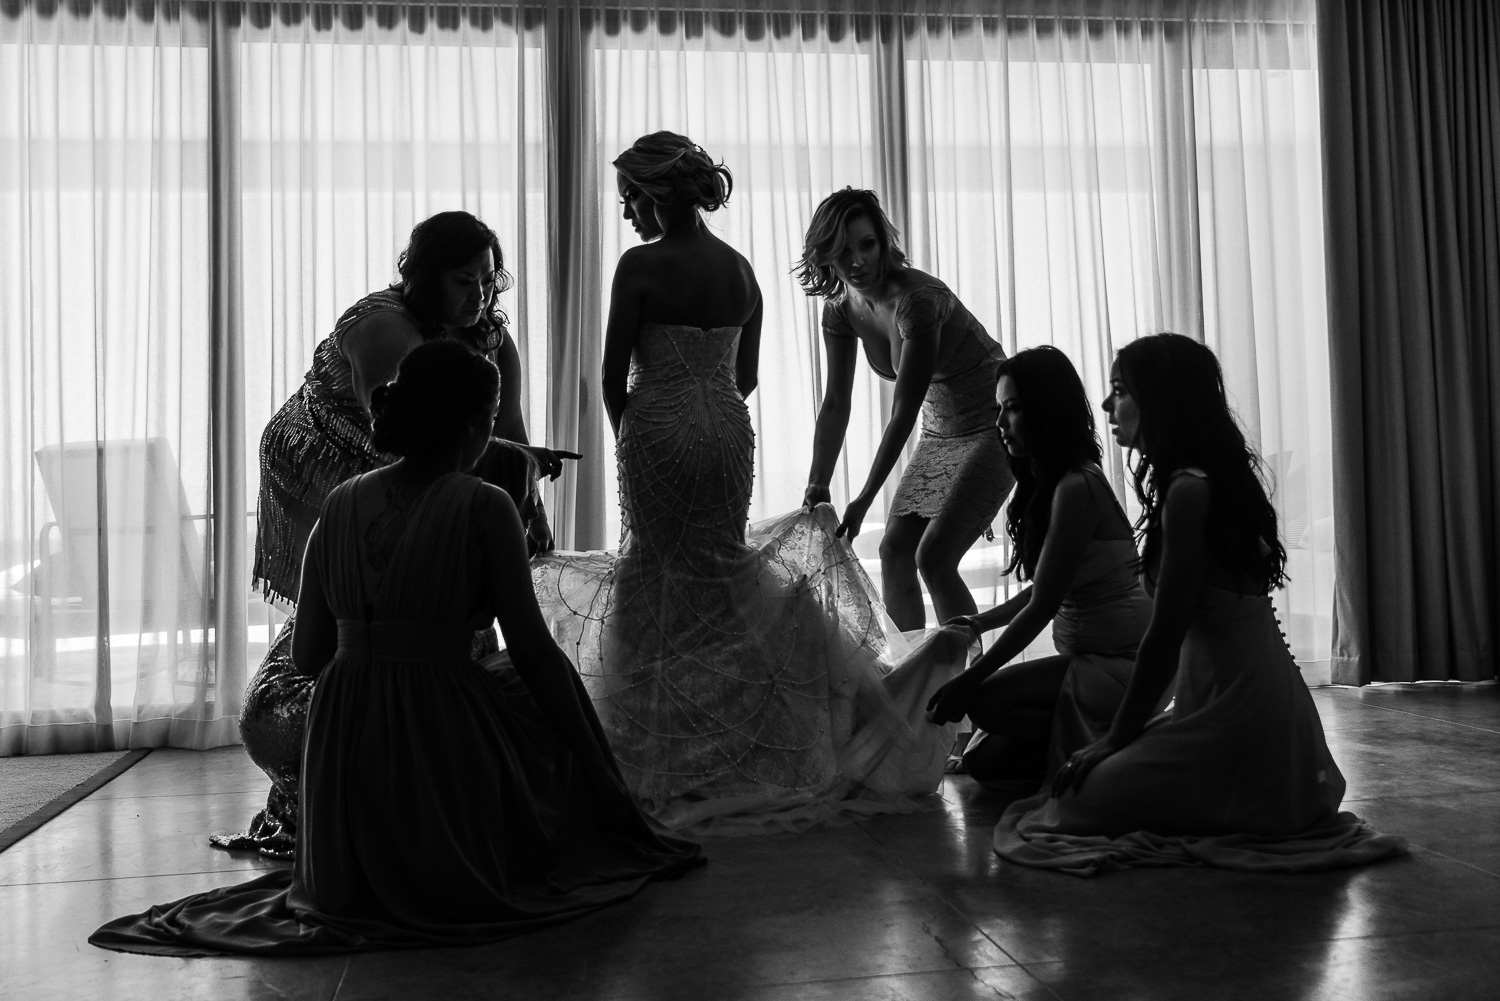 Bride is wearing her lovely white gown with intricate designing   The picture beautifully captures from back the bride getting ready on her wedding day. She is wearing an elegant white gown with intricate details on it and is getting it set with the help of five of her bridesmaids- destination wedding of the wonderful couple at the beautiful El Ganzo, Baja California Sur. GVphotographer is an amazing destination wedding photographer based in Cabo San Lucas, Mexico